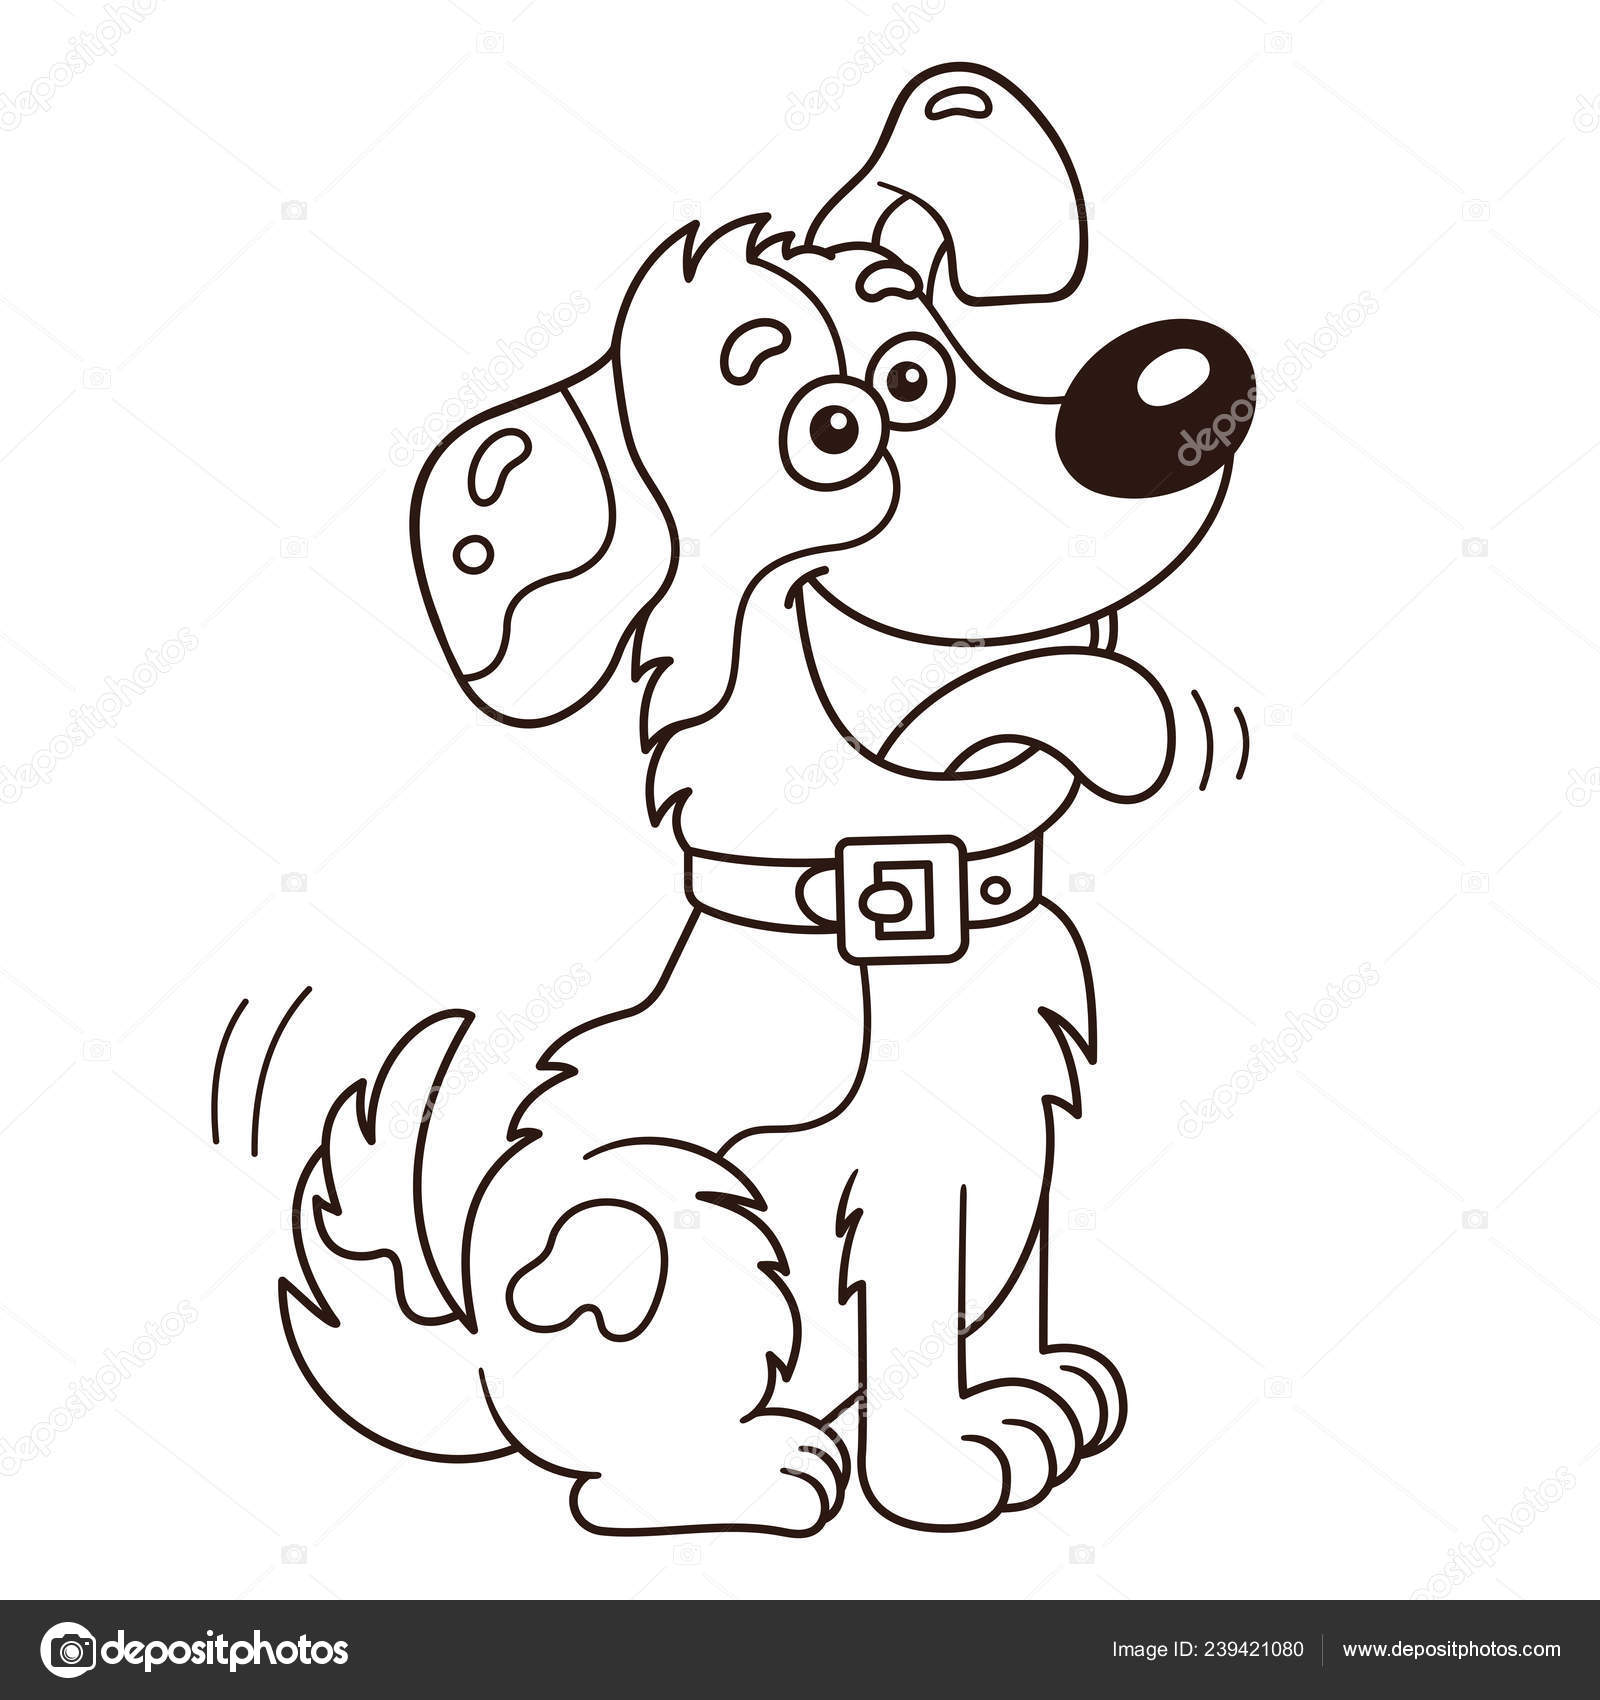 Coloring Page Outline Cartoon Dog Coloring Book Kids Stock